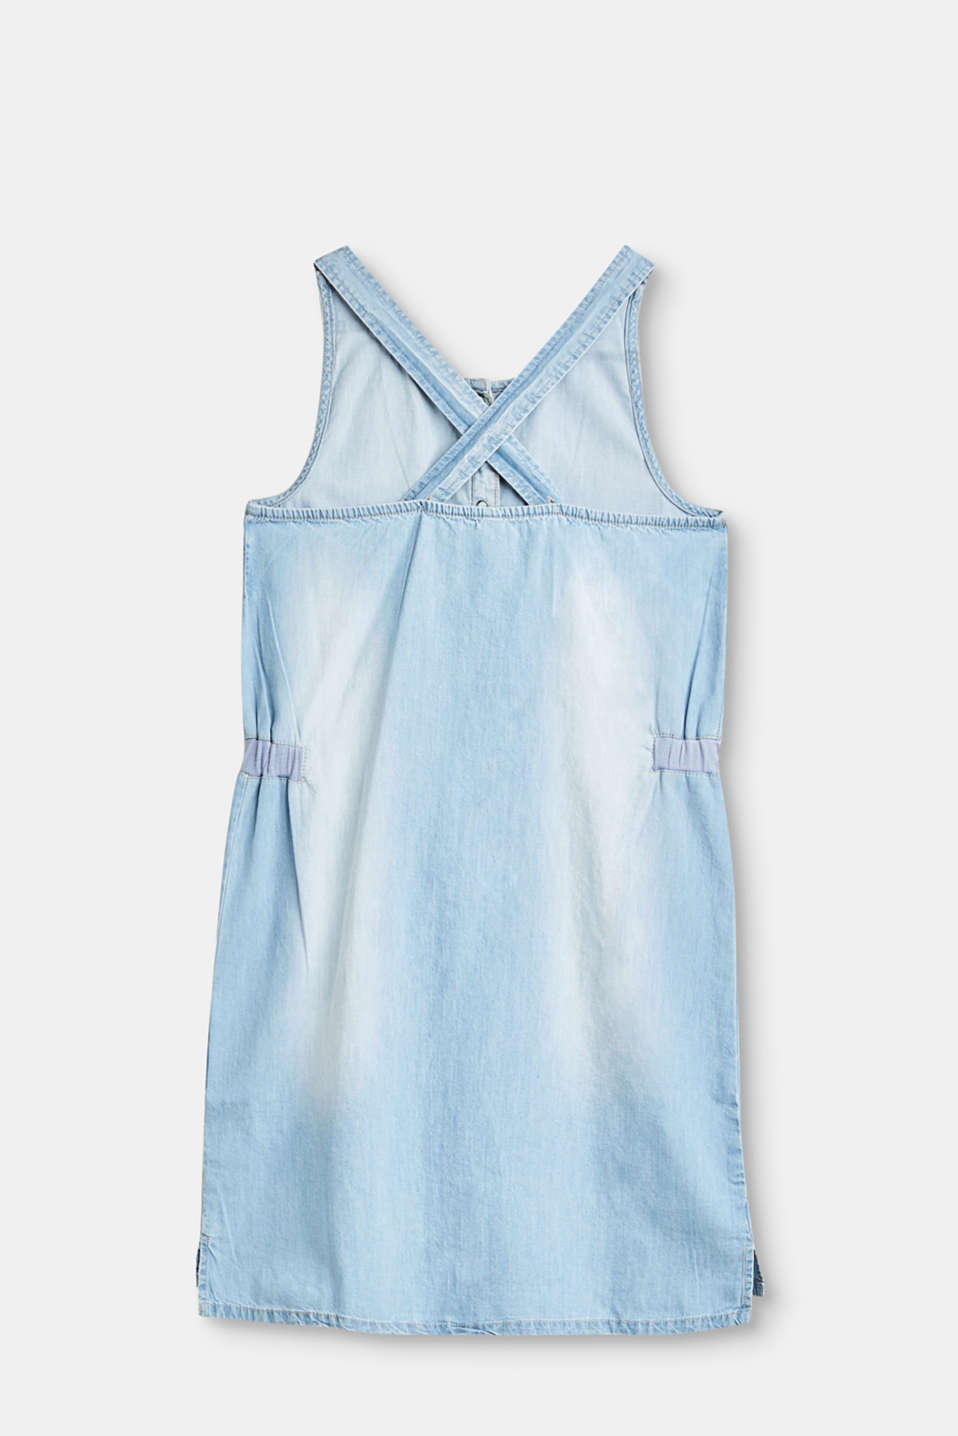 Denim dress in a washed out look